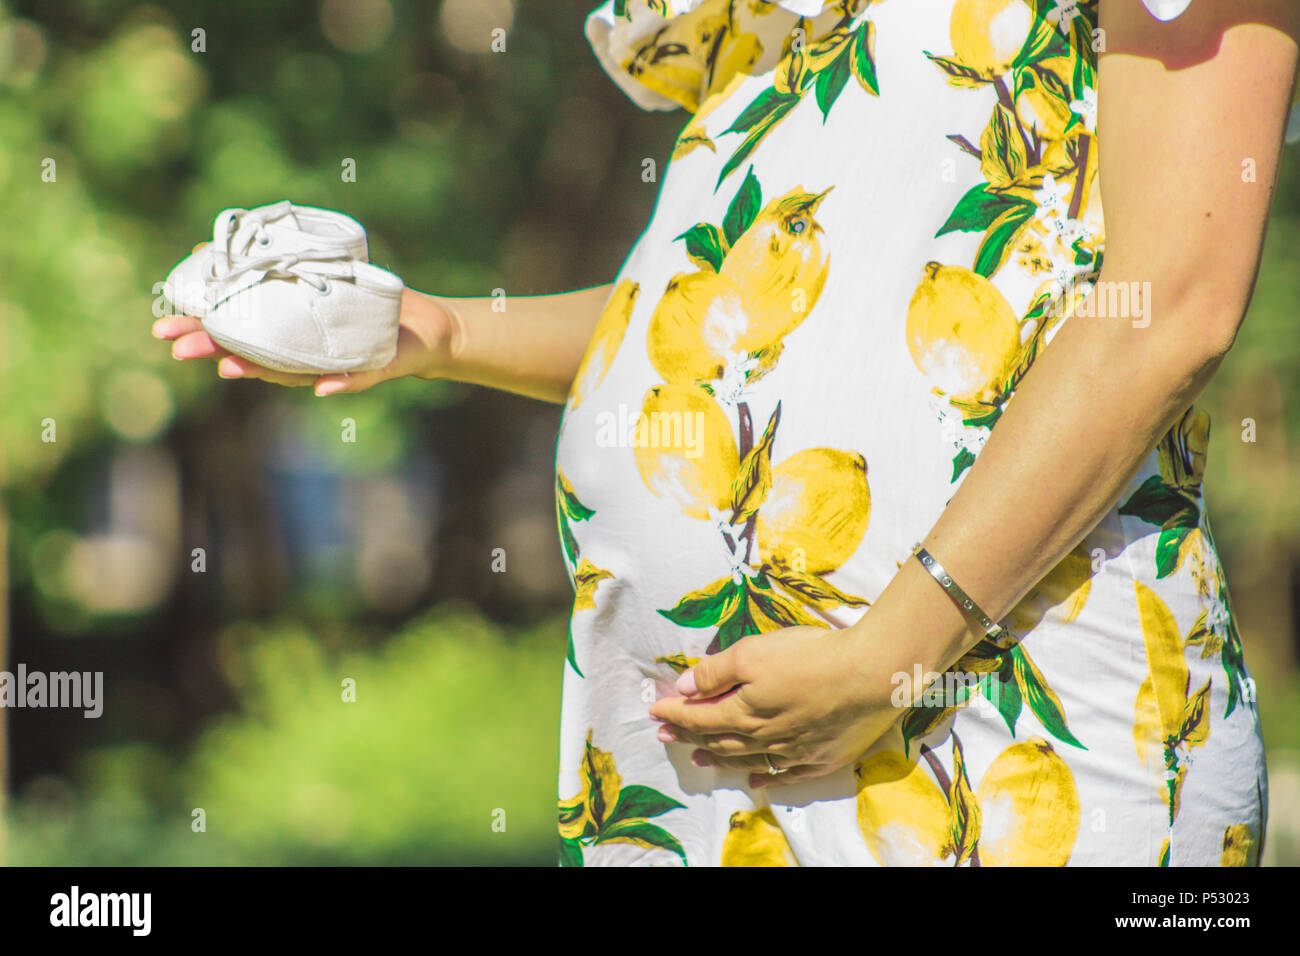 Pregnant girl holding her chopped baby shoes - Stock Image